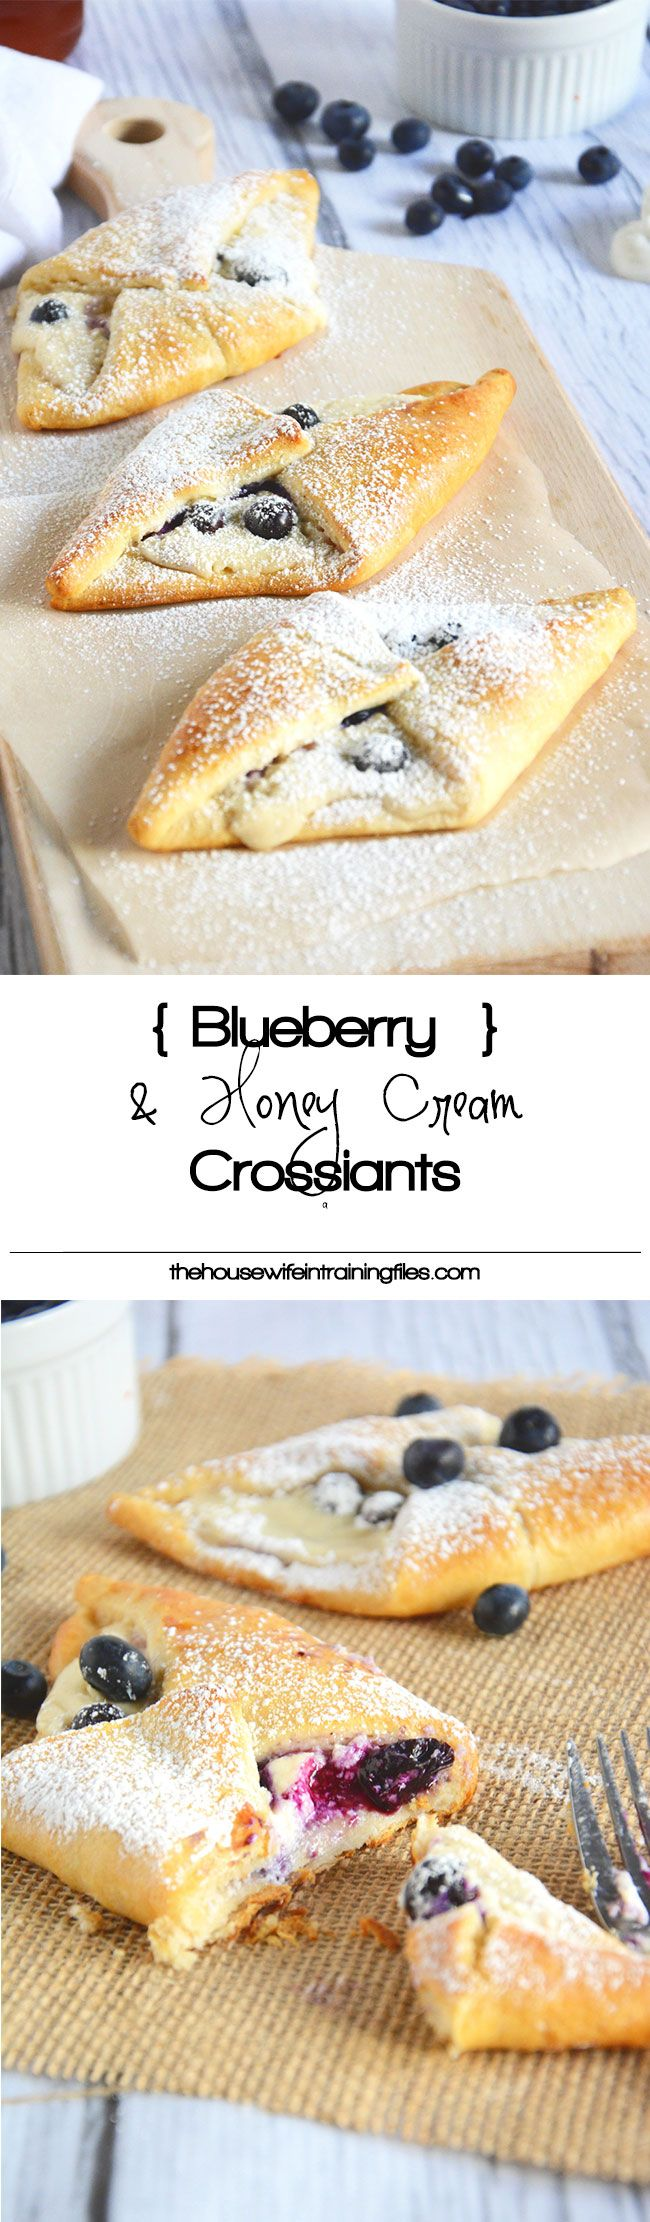 Blueberry & Honey Cream Croissants are buttery and flakey, filled with whipped honey cream cheese, tart blueberries are the perfect breakfast